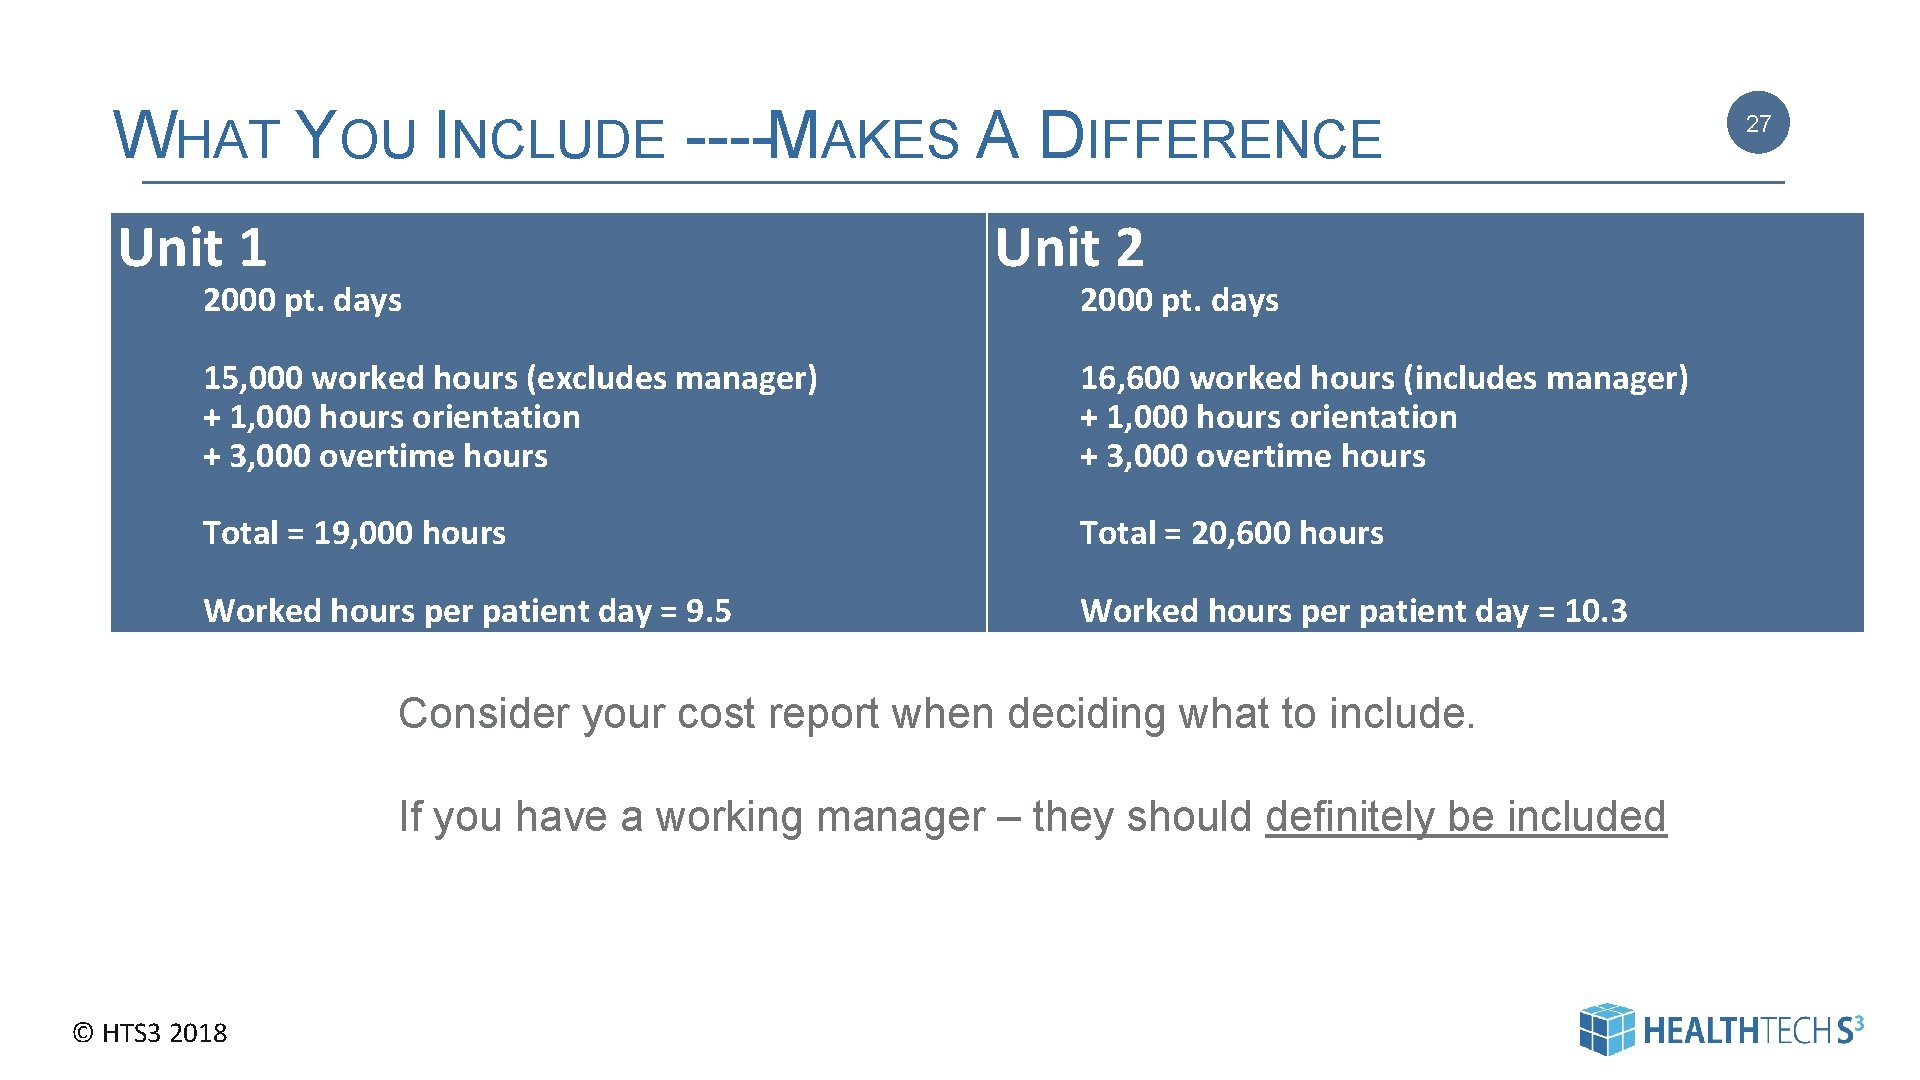 WHAT YOU INCLUDE ---- MAKES A DIFFERENCE Unit 1 2000 pt. days Unit 2